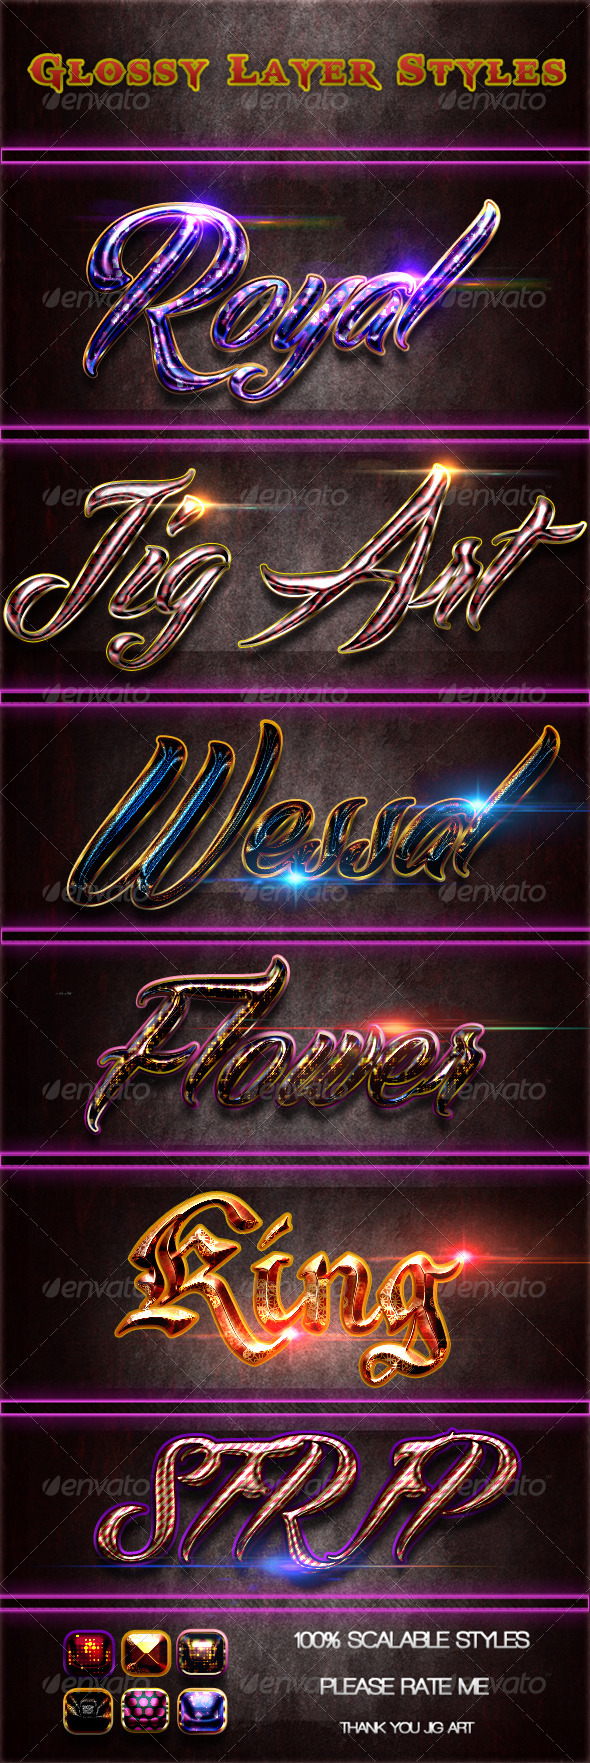 GraphicRiver Glossy Layer Styles 5295741